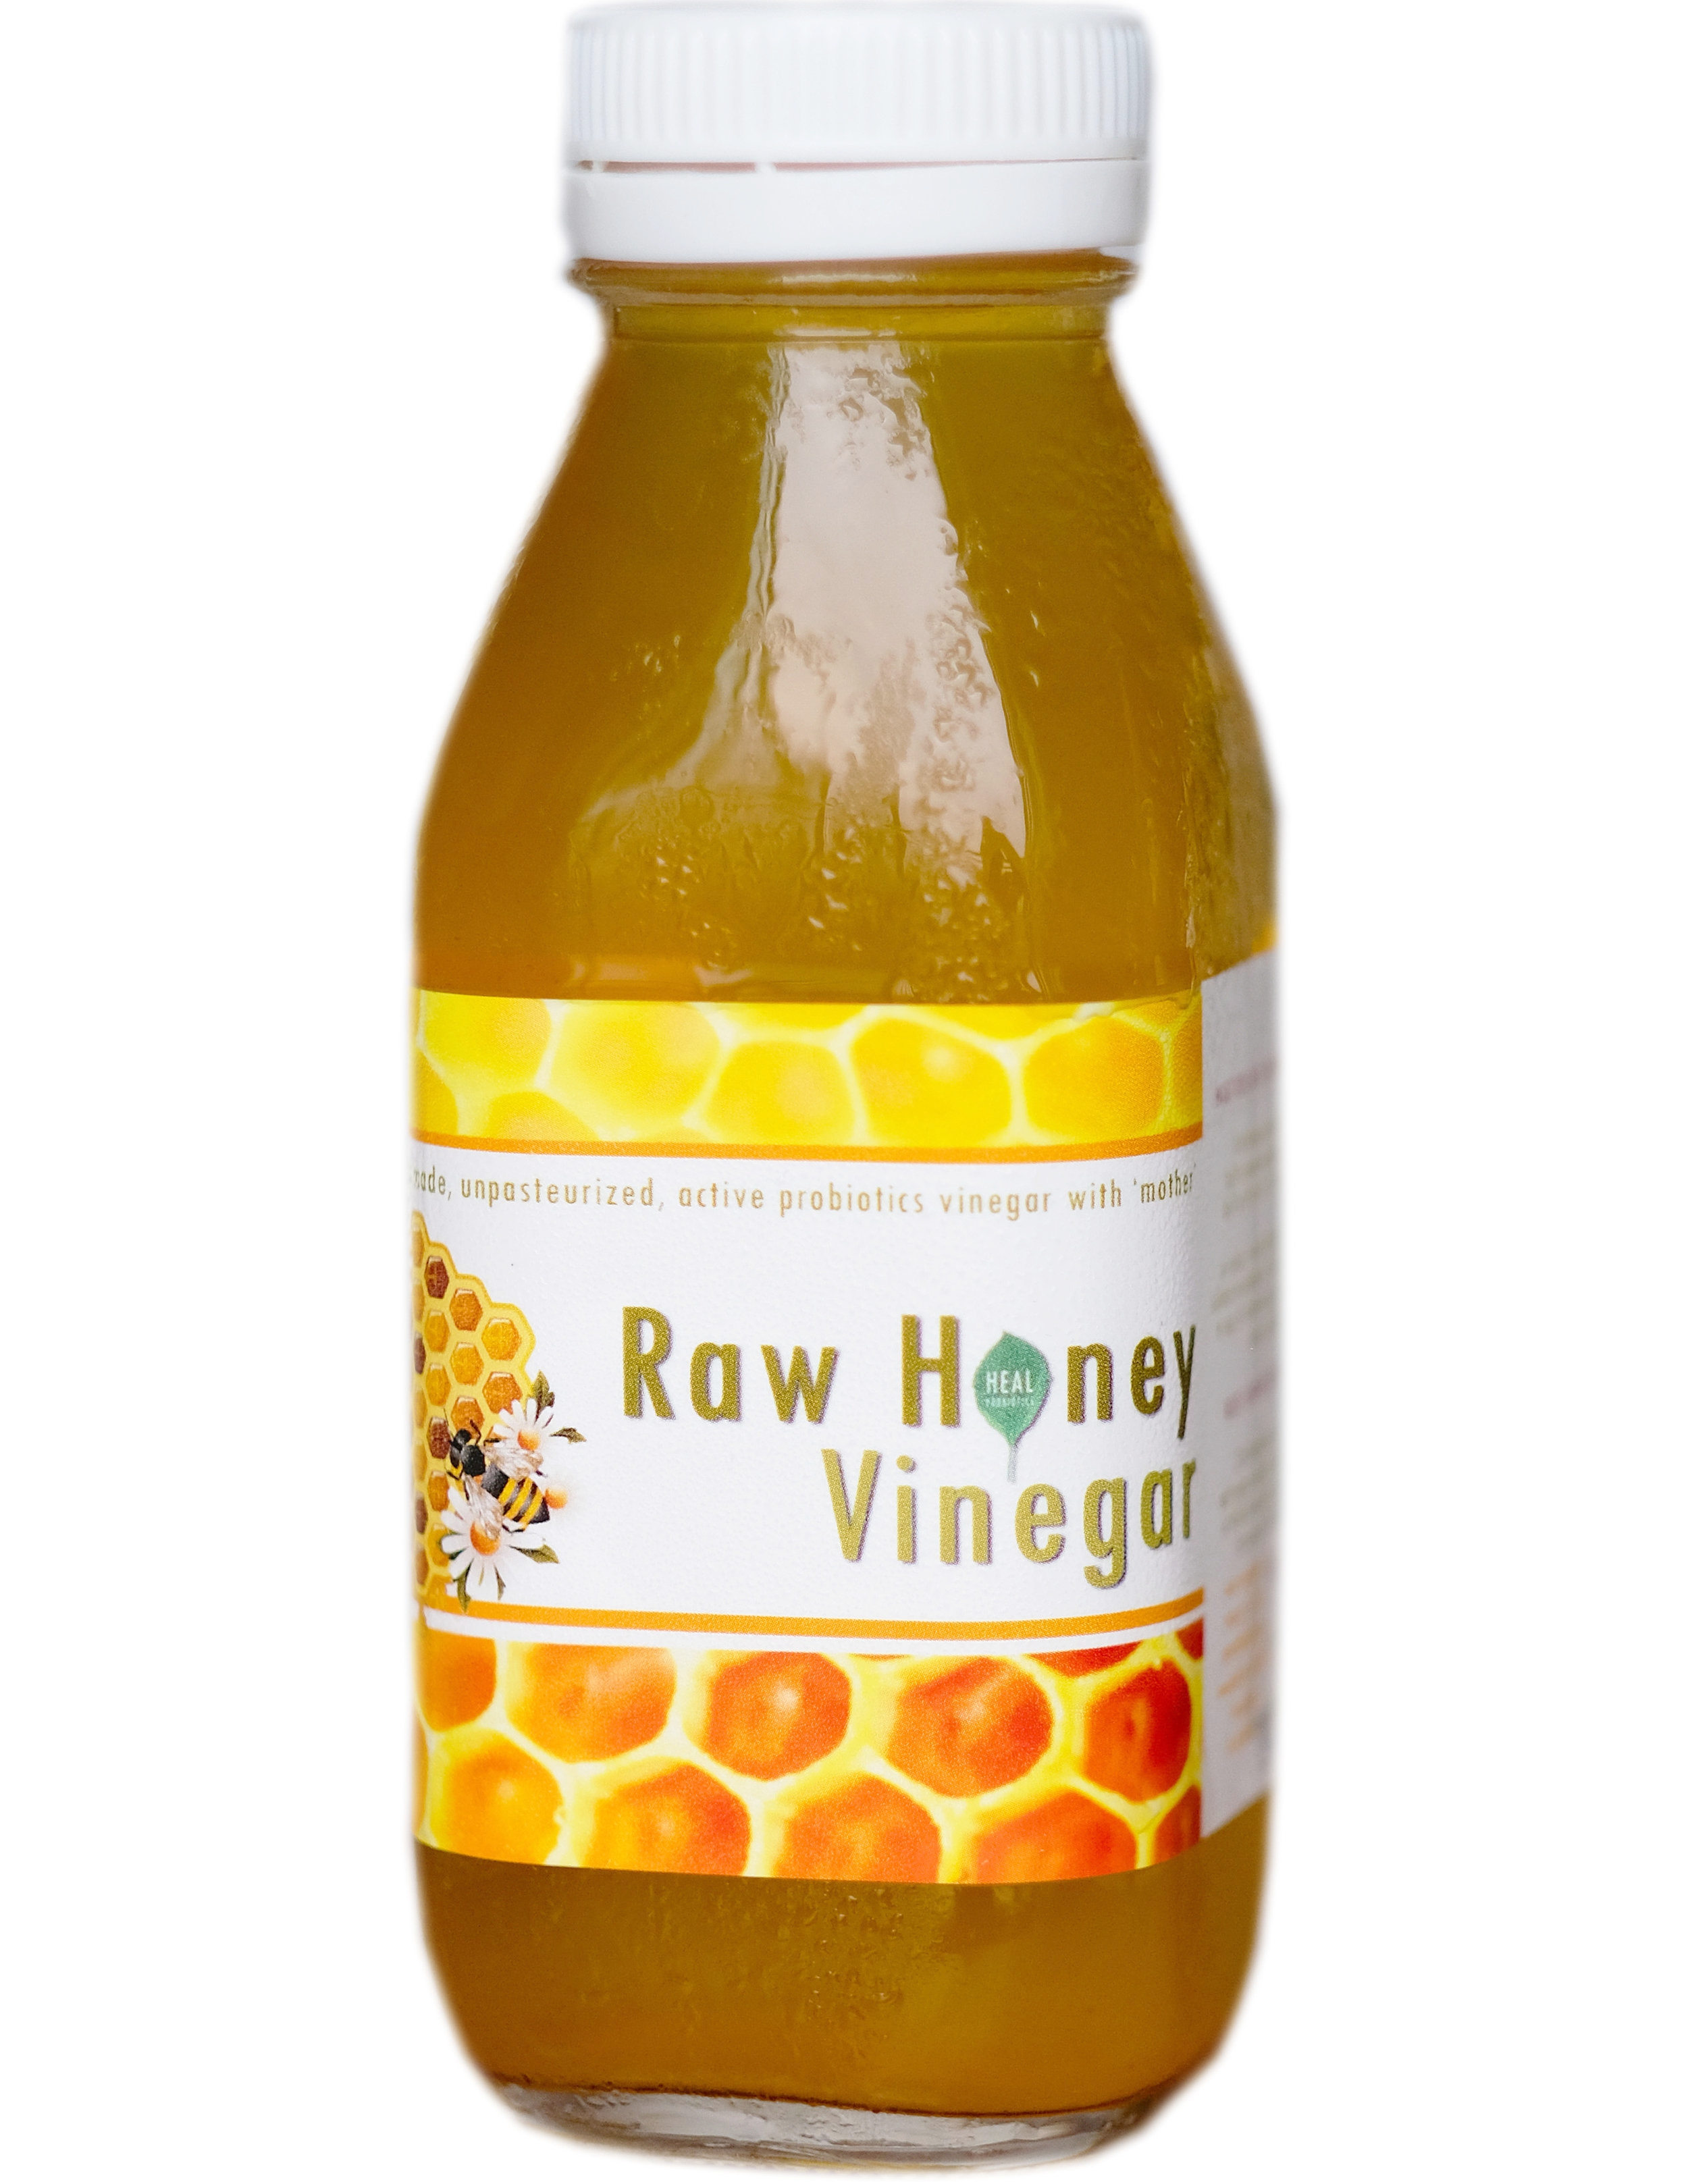 Who doesn't know the health benefits of raw, probiotics-ladden vinegar? Alas, high quality apple cider vinegars are costly, both in price and environmental impacts they incur, as they are imported from faraway land.  This Raw-Honey Vinegar was crafted by utilizing the best raw local forest honey we can get our hands on. Unlike apple cider, this vinegar contains bee pollen and propolis carried over from the honey, and glucuronic acid for liver detox.  Brewed for months and months, it still has a pleasant sweetness to it. Use it in salad, in recipes, vinegar drinks and many more.  Ingredients: Mineral water, cultures, raw honey, Java oolong tea  Packaged in 300 ml glass bottle, 100% recyclable, reusable, and  refundable